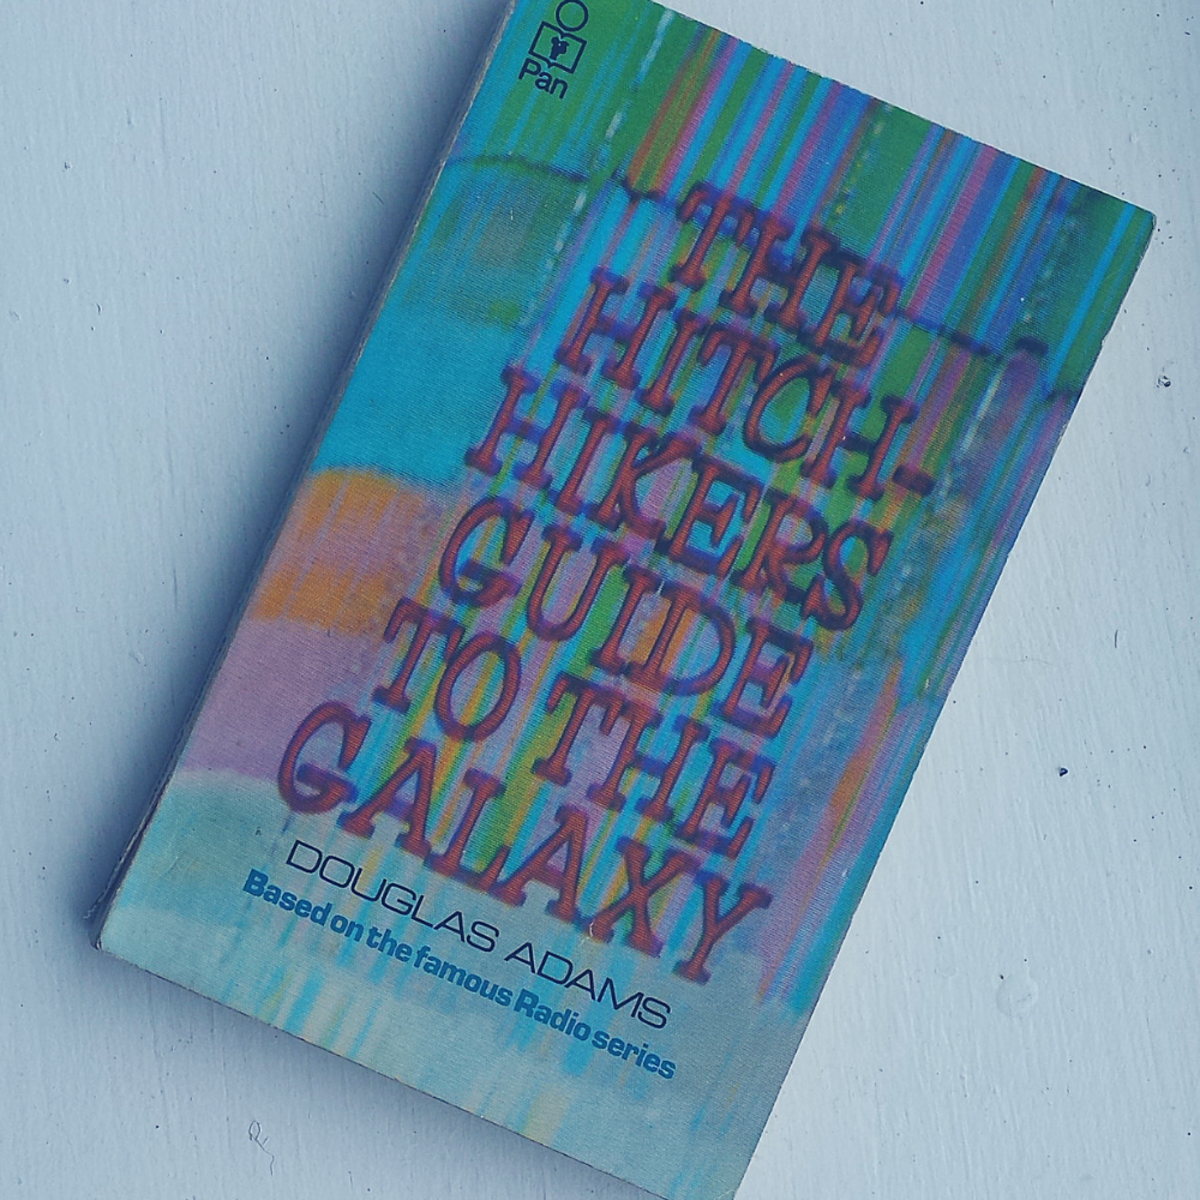 The quintessential nerd book: The Hitchhiker's Guide to the Galaxy. I don't think you can call yourself a nerd if you haven't read it.